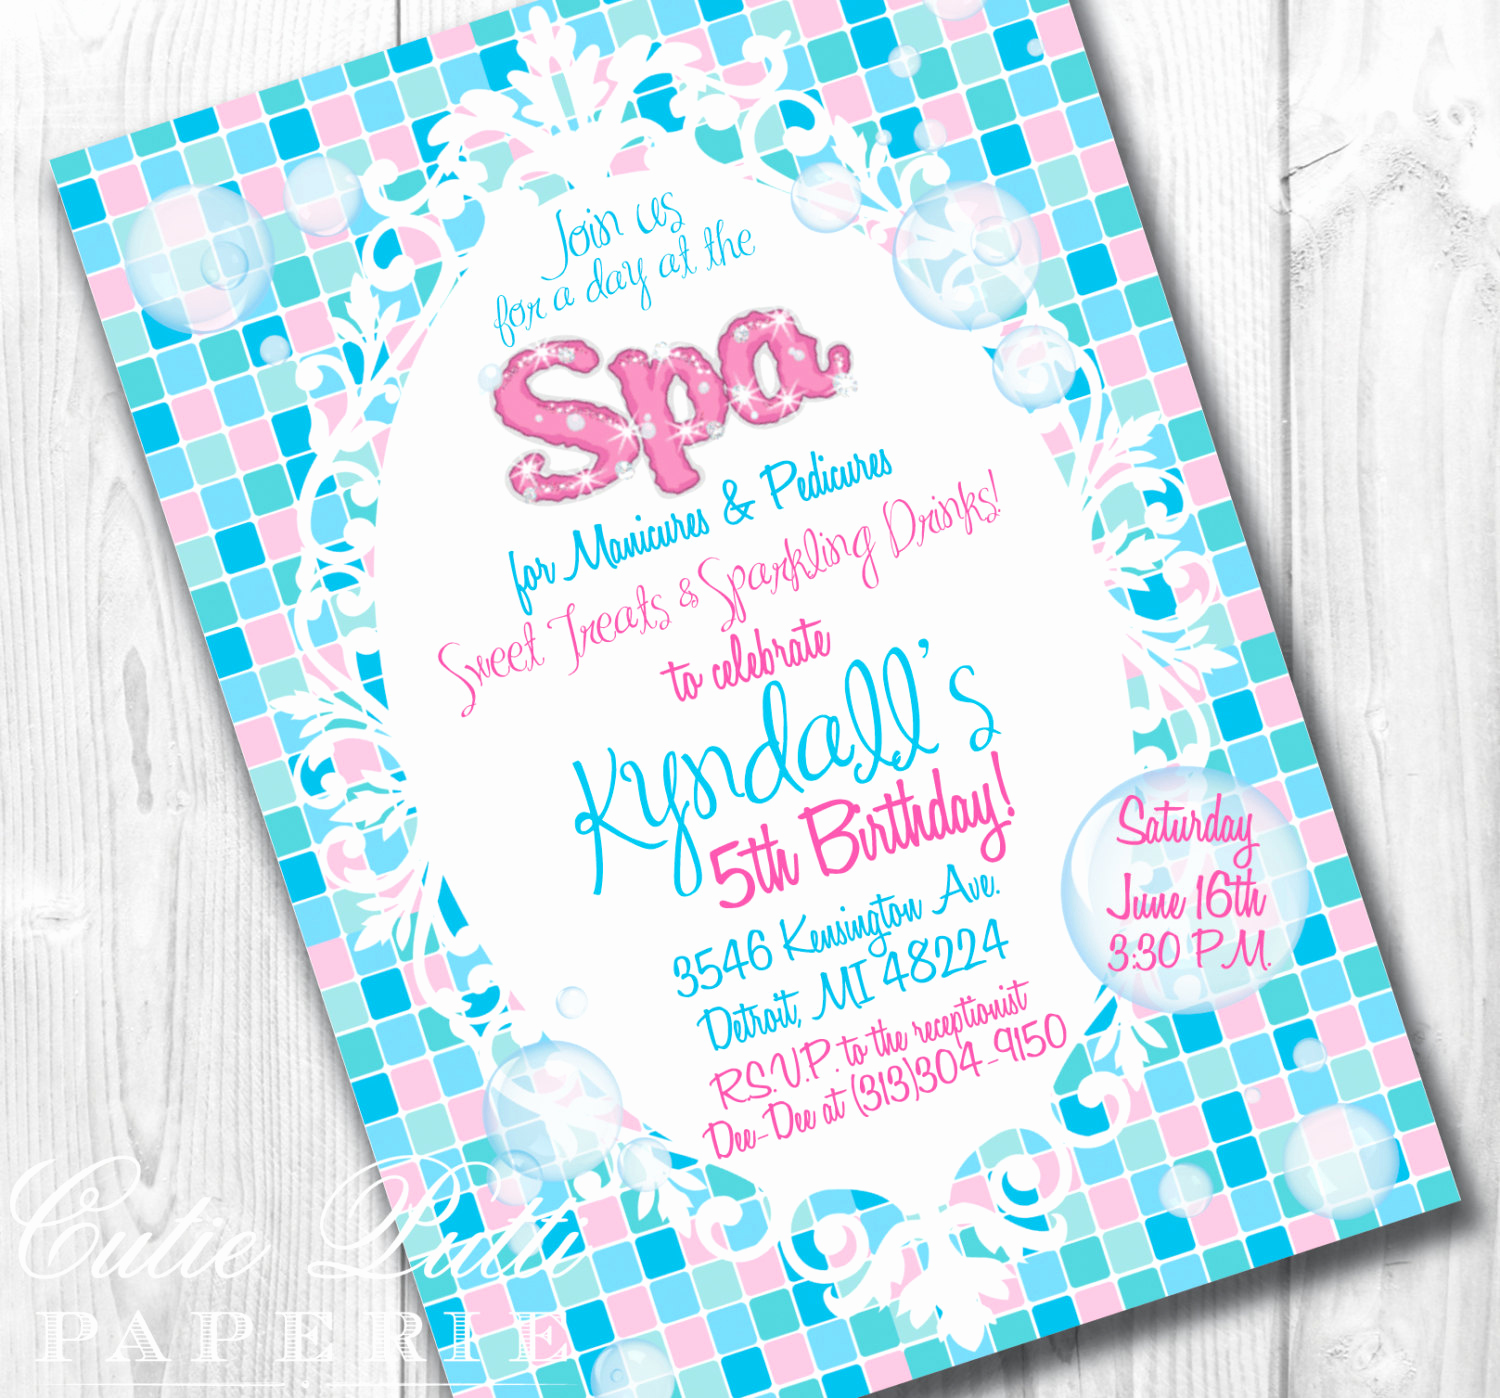 Spa Invitation Template Free Fresh Spa Party Invitations Printable Custom Invitations by Cutie